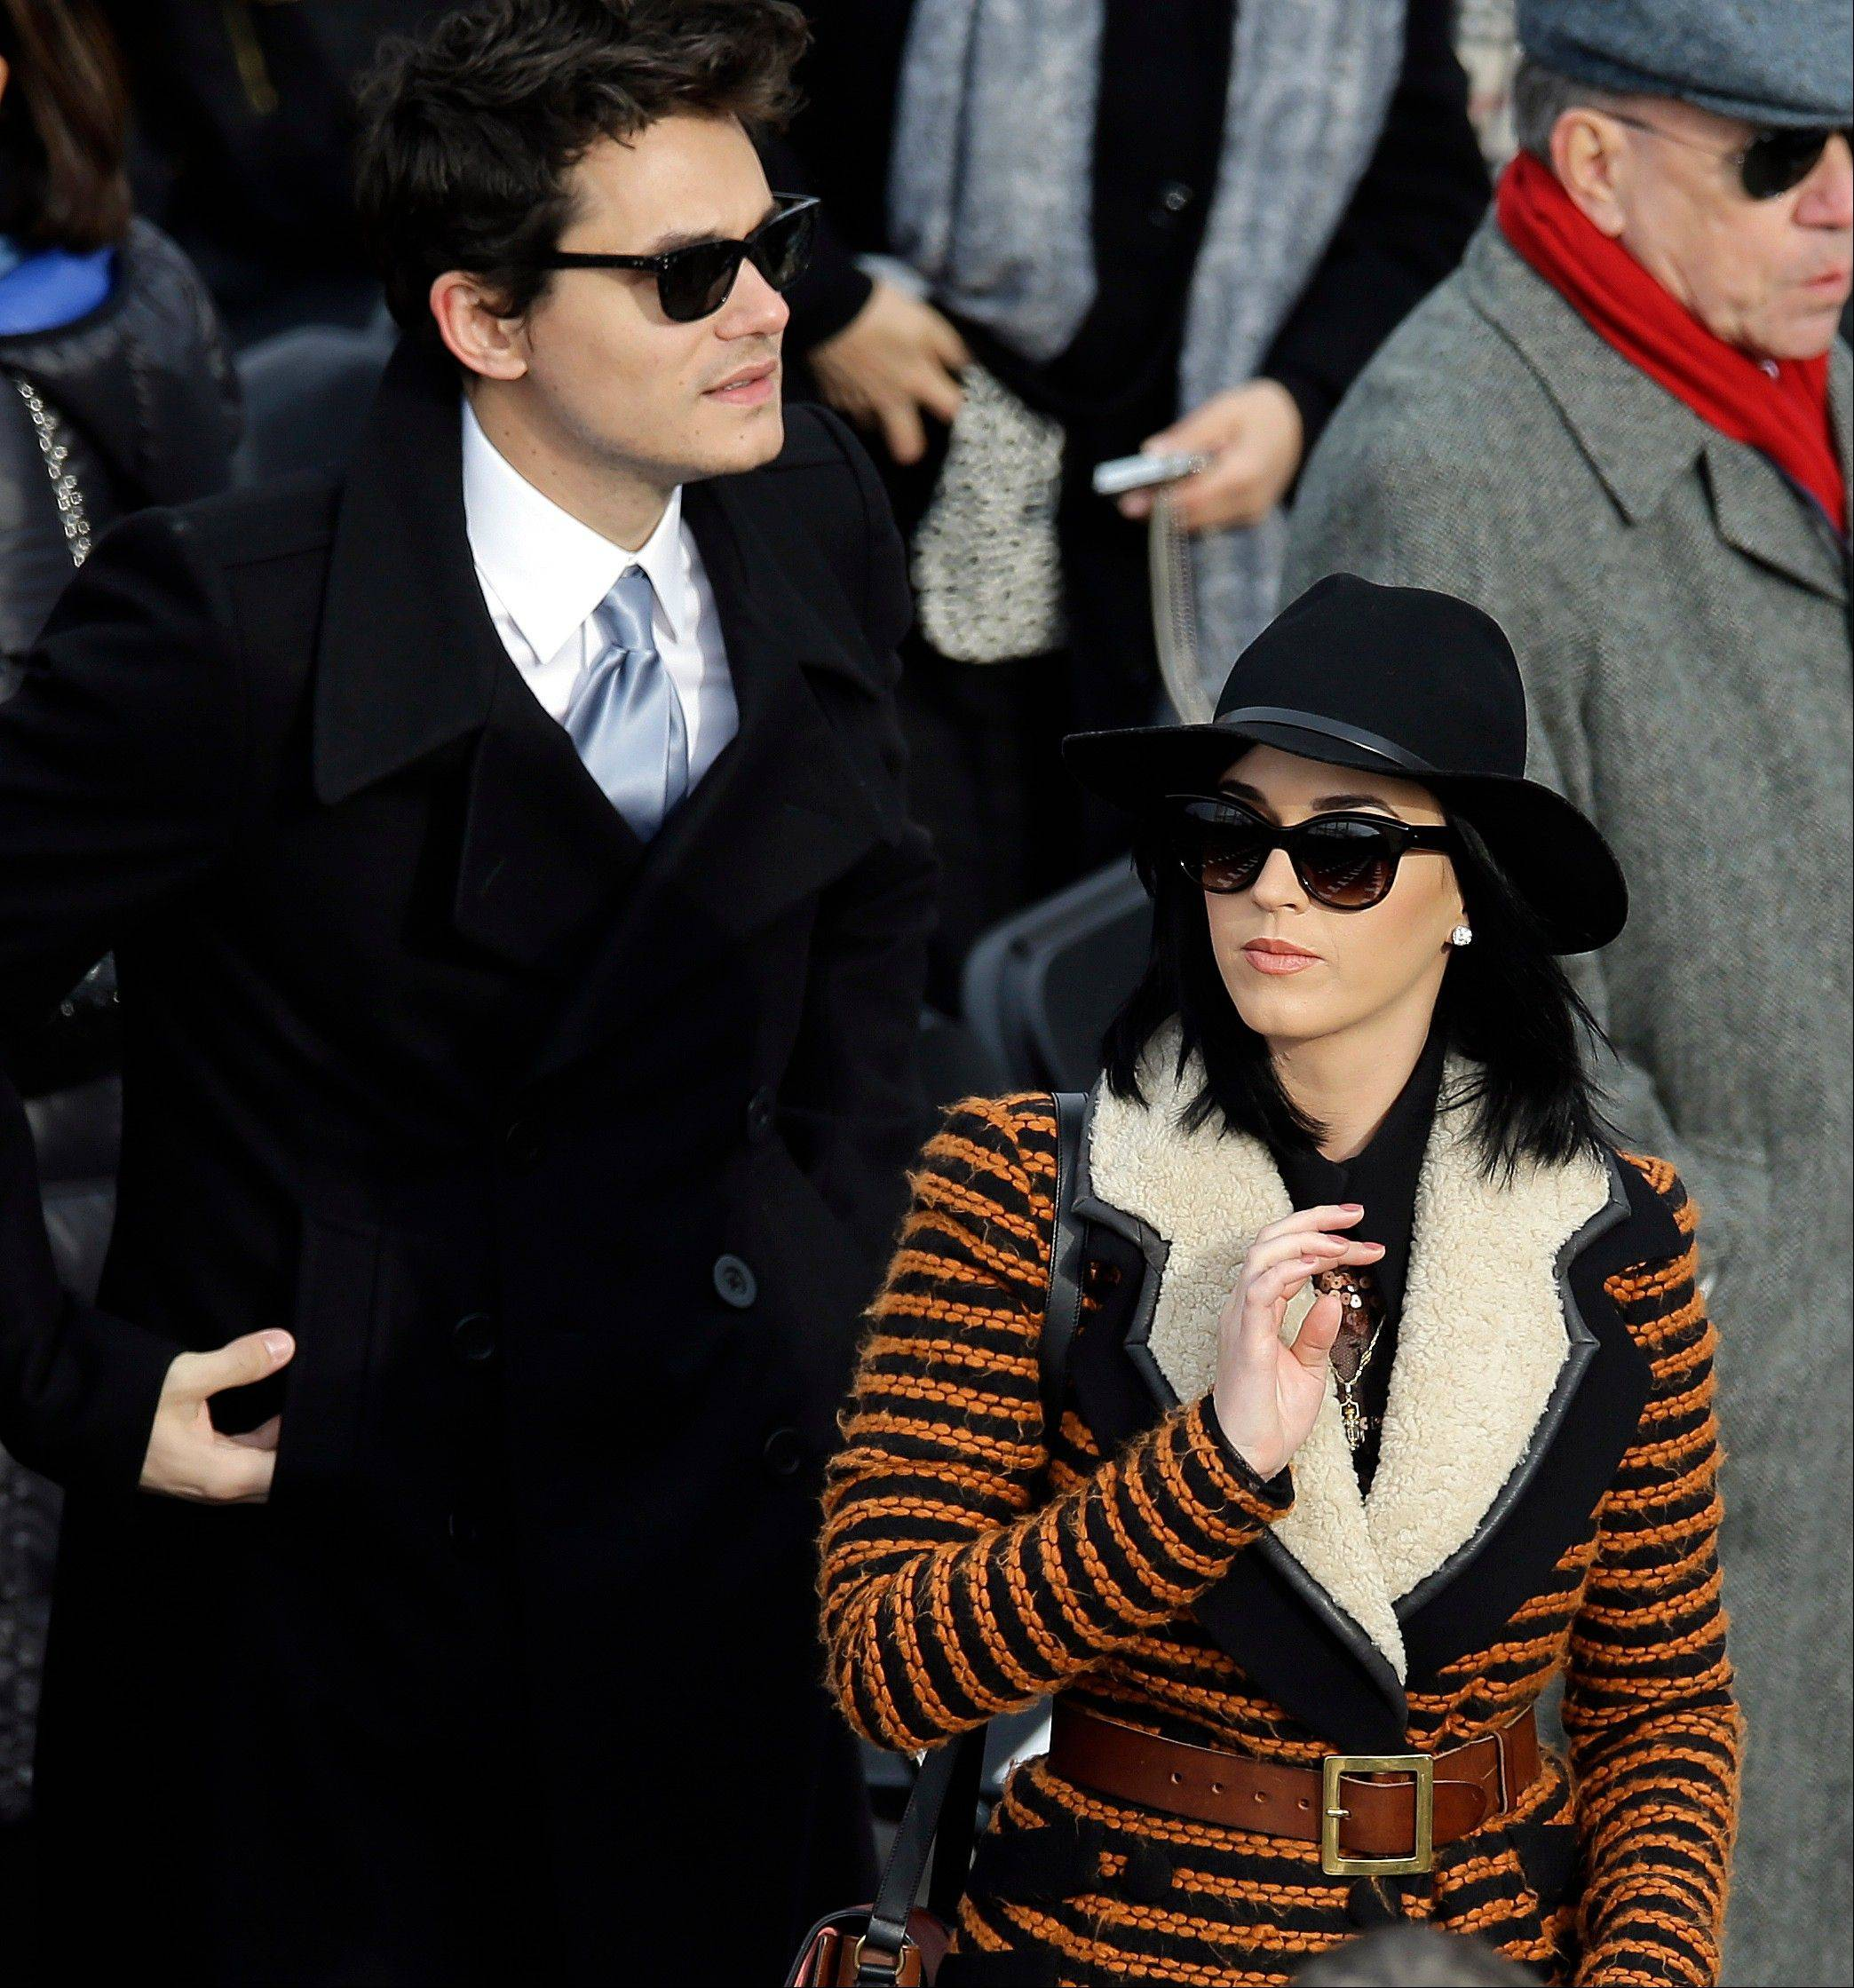 John Mayer and Katy Perry arrives for the ceremonial swearing-in of President Barack Obama at the U.S. Capitol during the 57th Presidential Inauguration in Washington, Monday, Jan. 21, 2013.